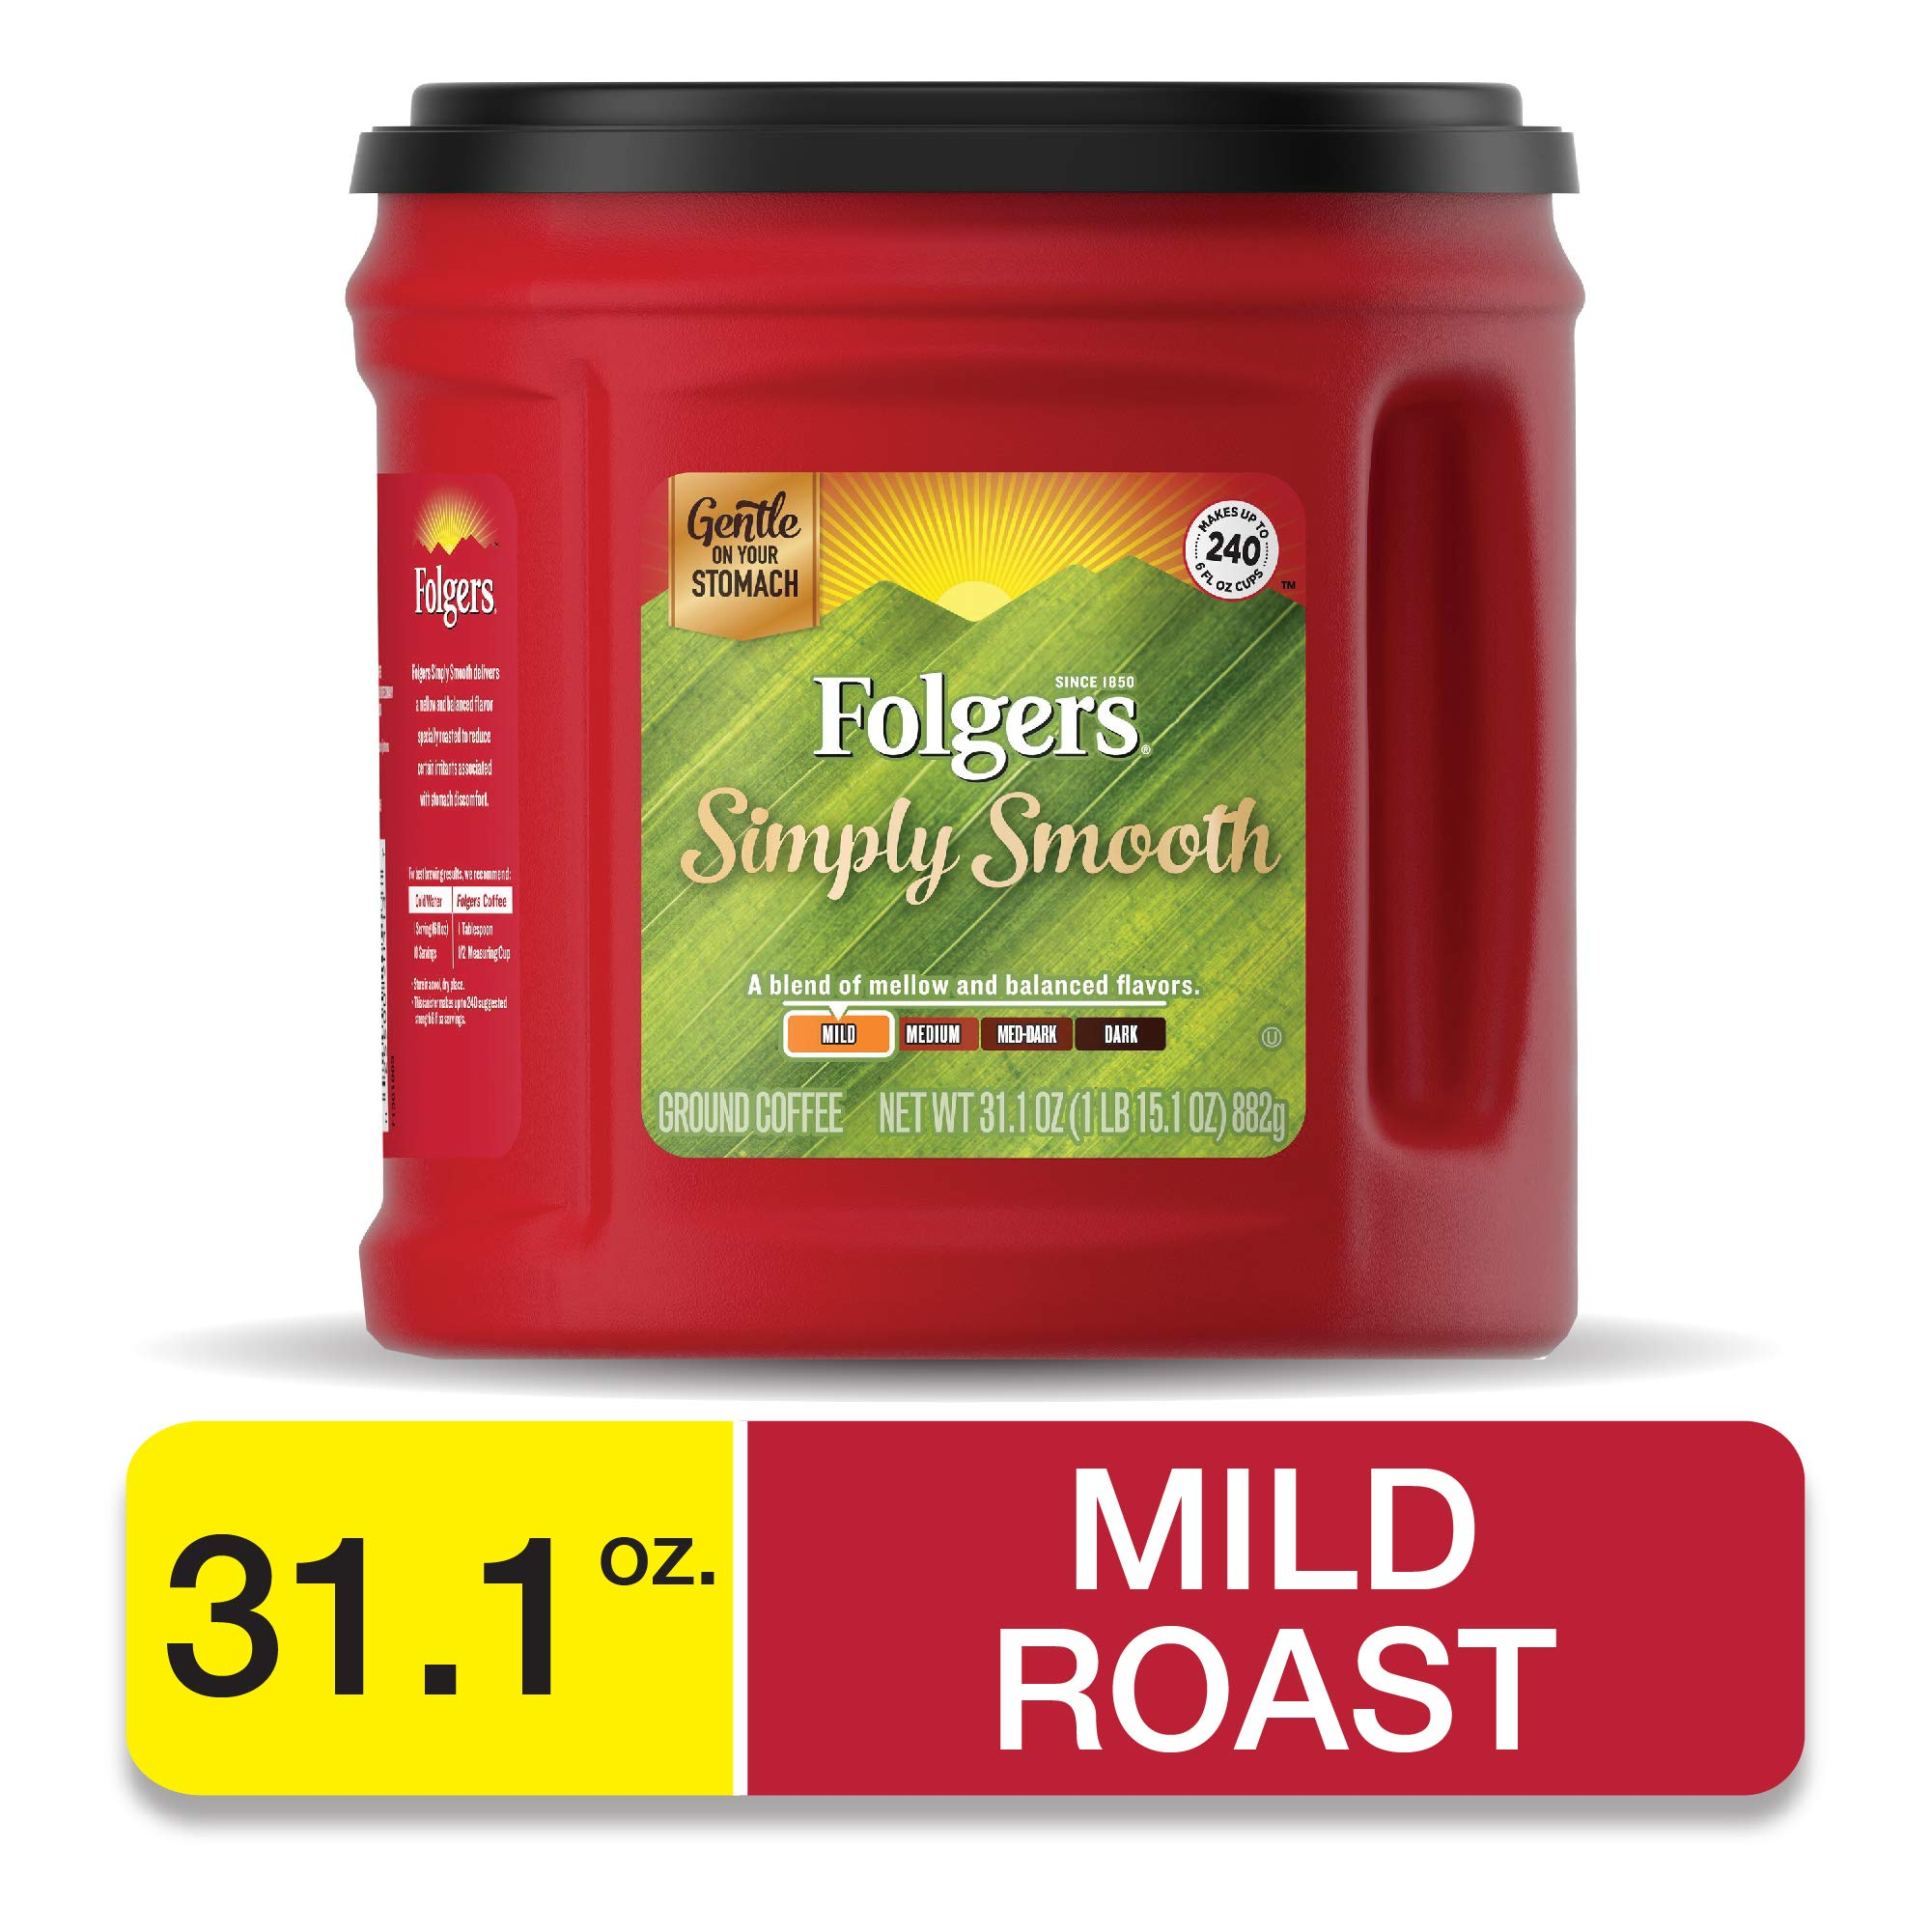 Folgers Simply Smooth Medium Roast Ground Coffee, 31.1 Ounces, Packaging May Vary by Folgers